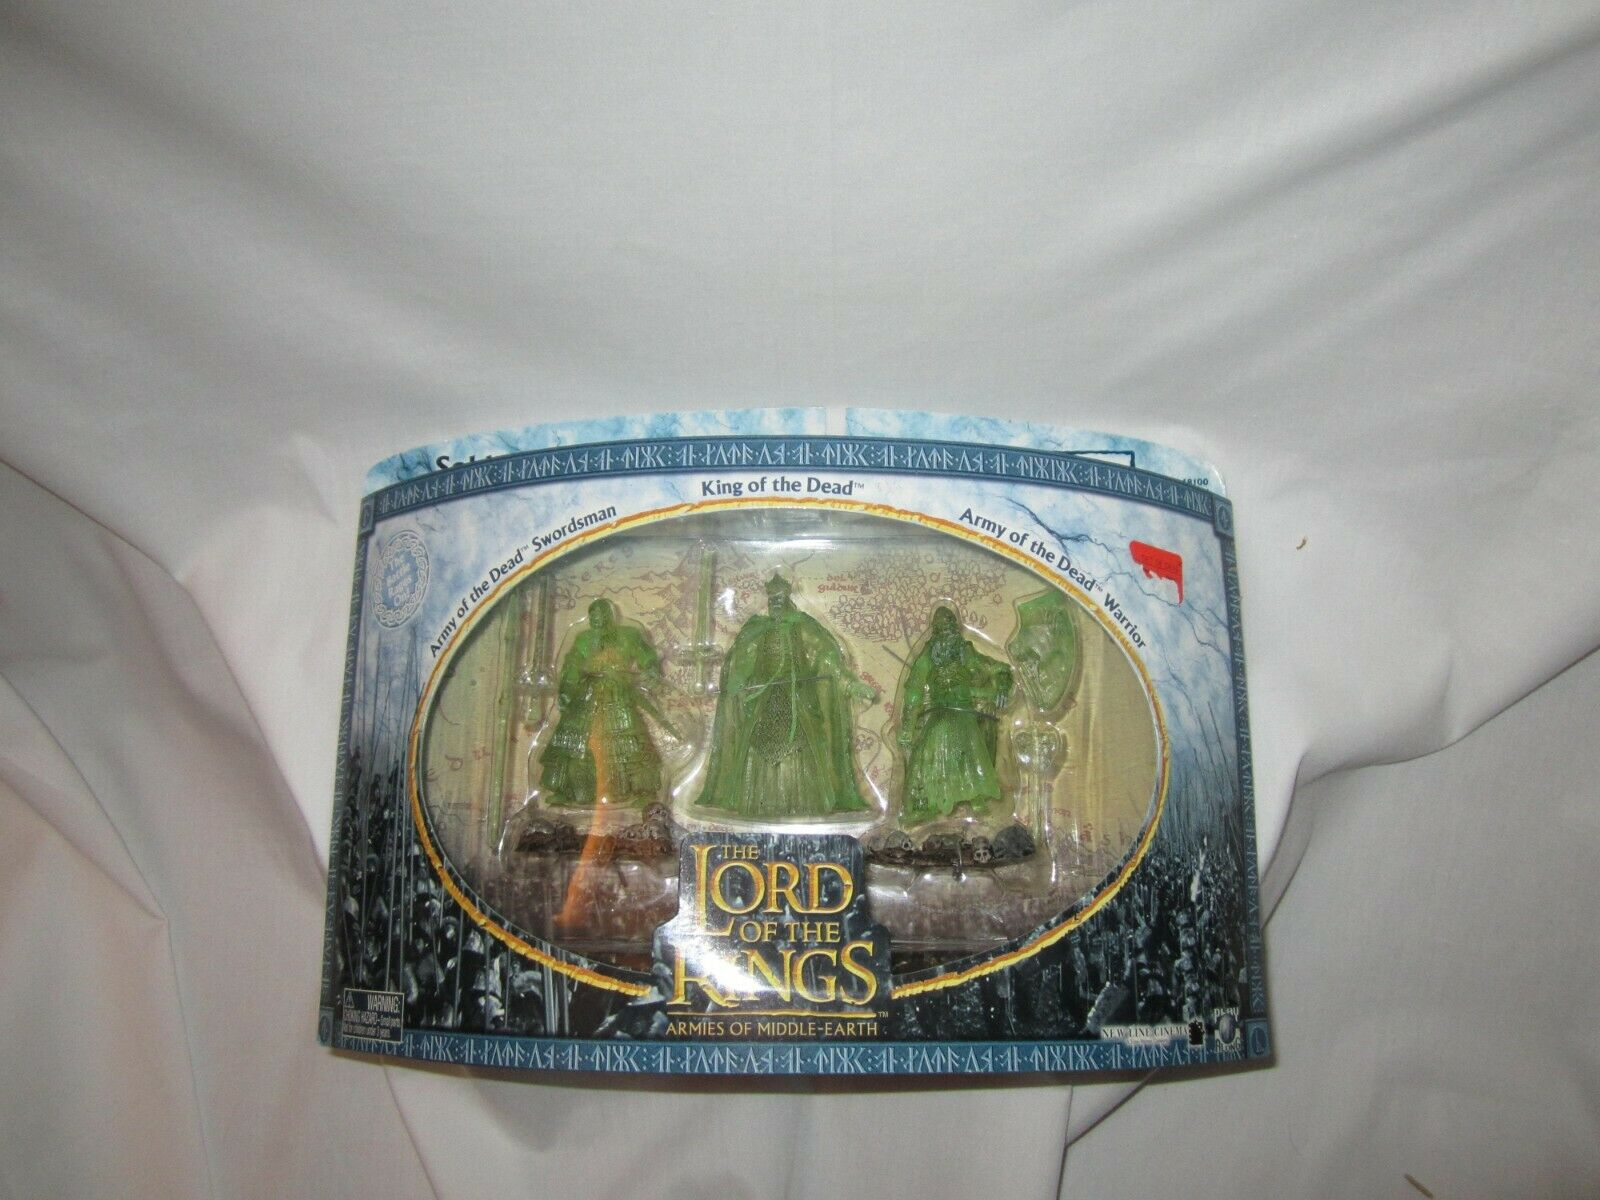 Lord of the Rings Soldier and Scenes Army of the Dead